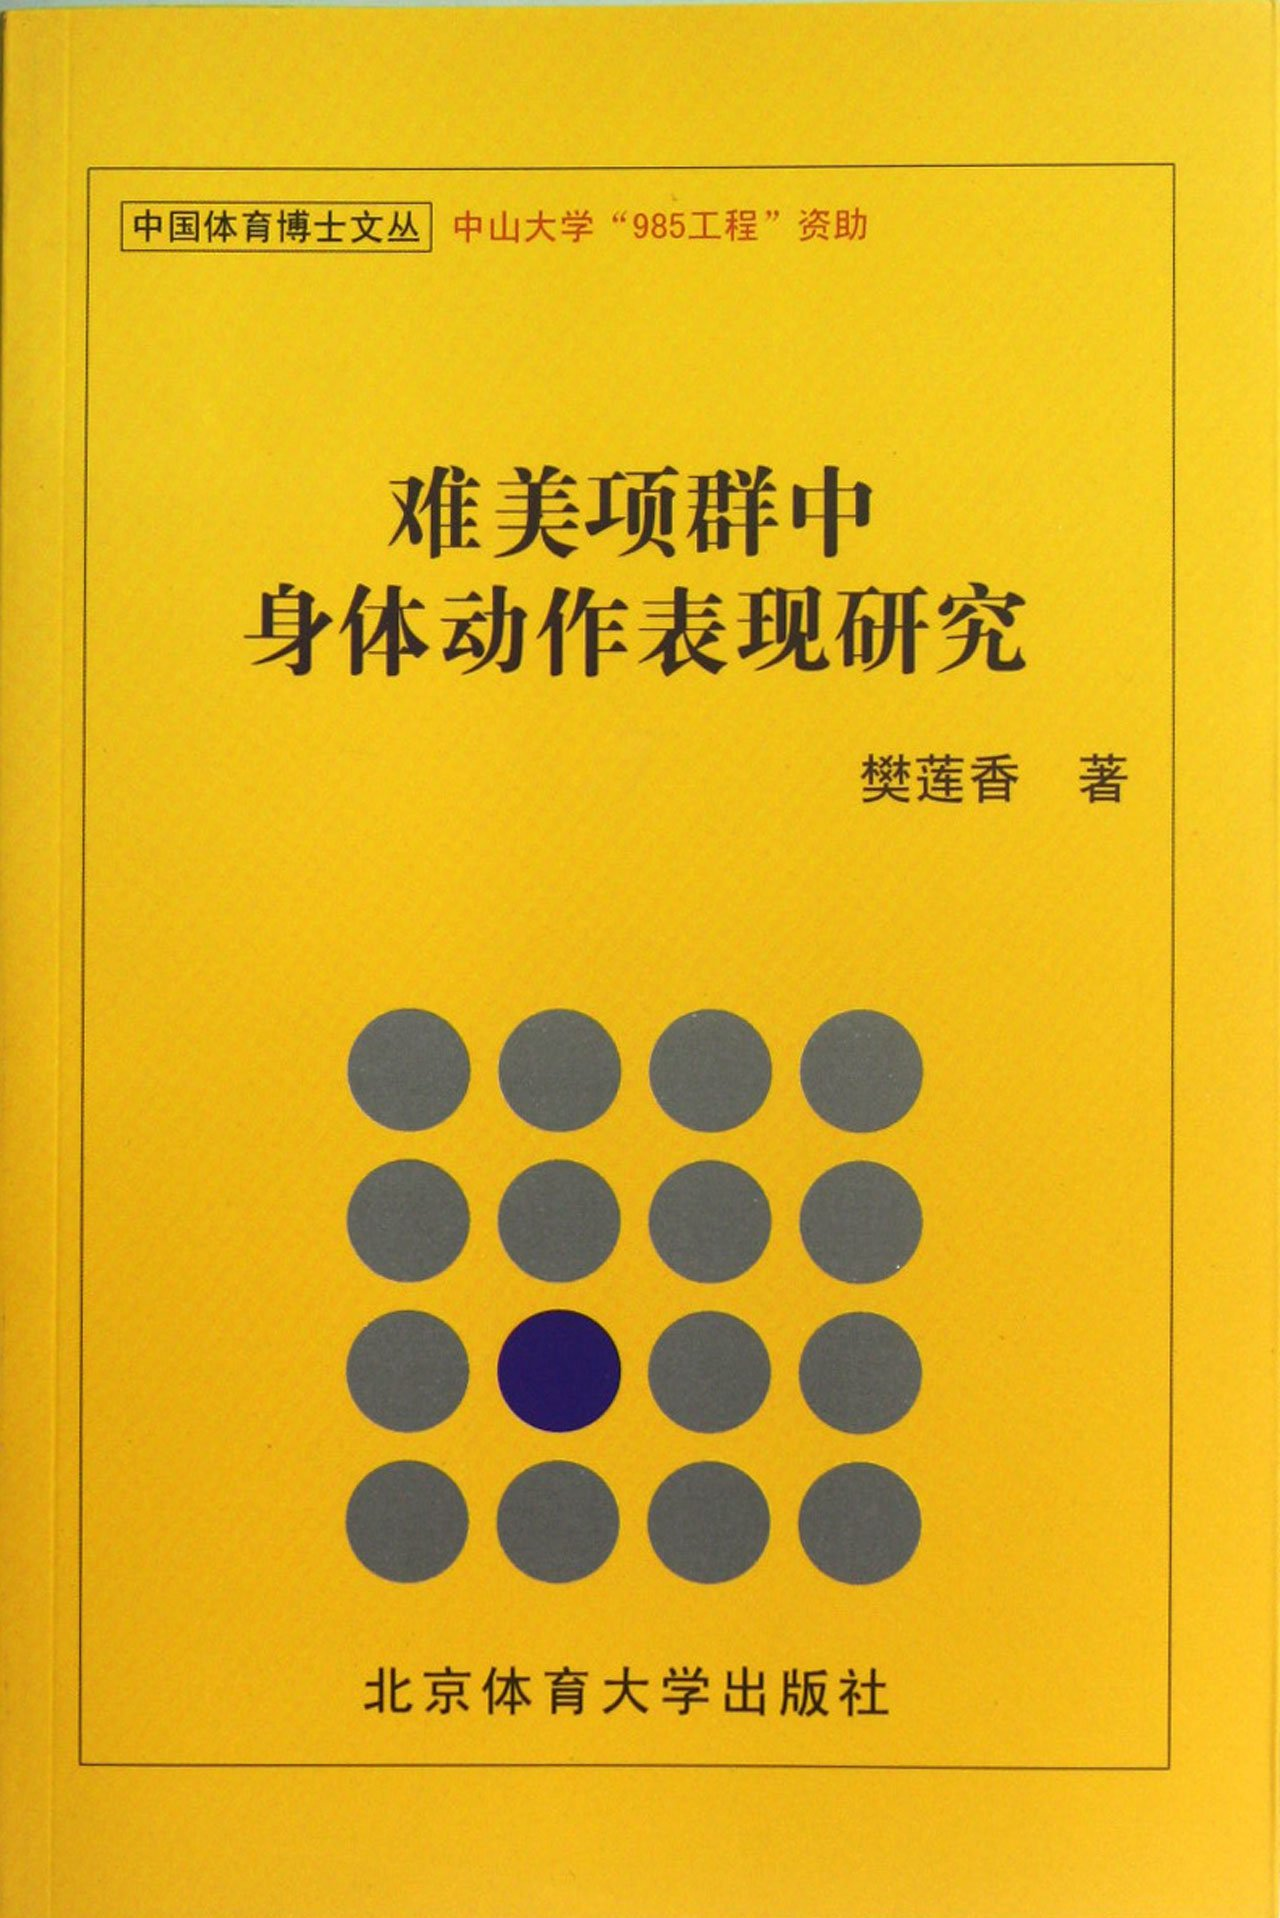 Read Online Research of Body Action Performance in Difficulty and Beauty Events (Chinese Edition) ebook